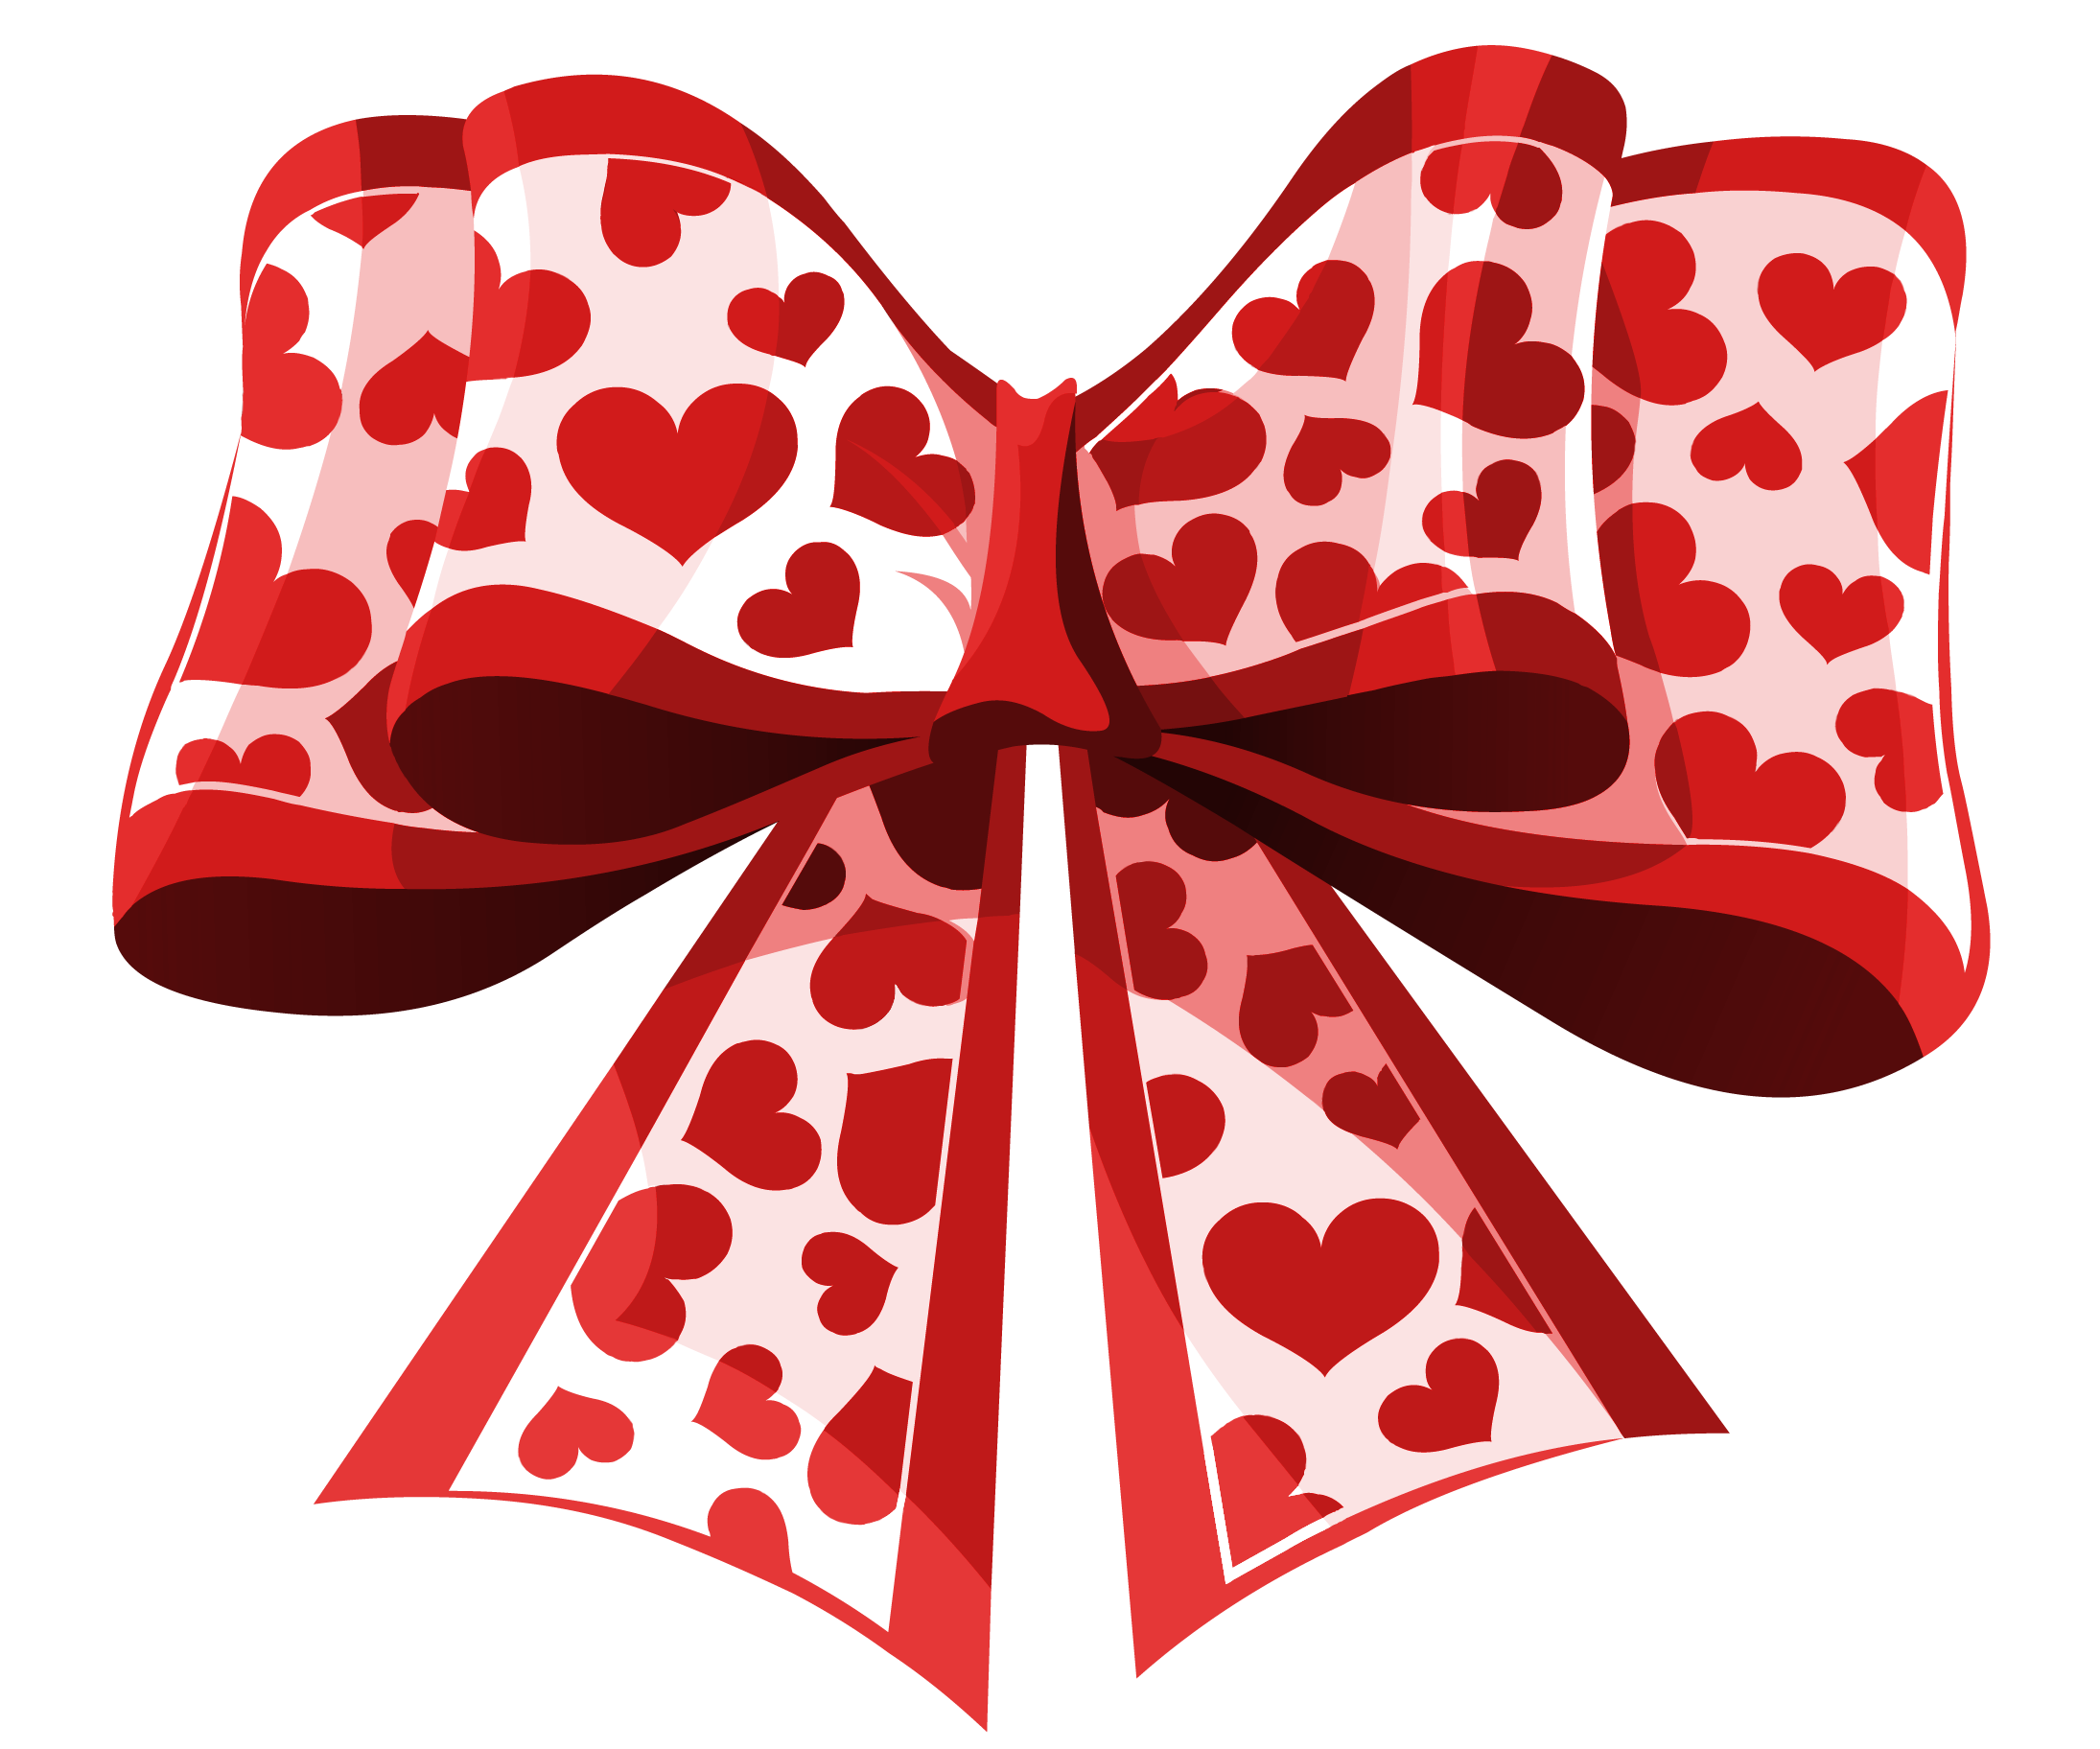 Starwars clipart valentines. Valentine red heart bow